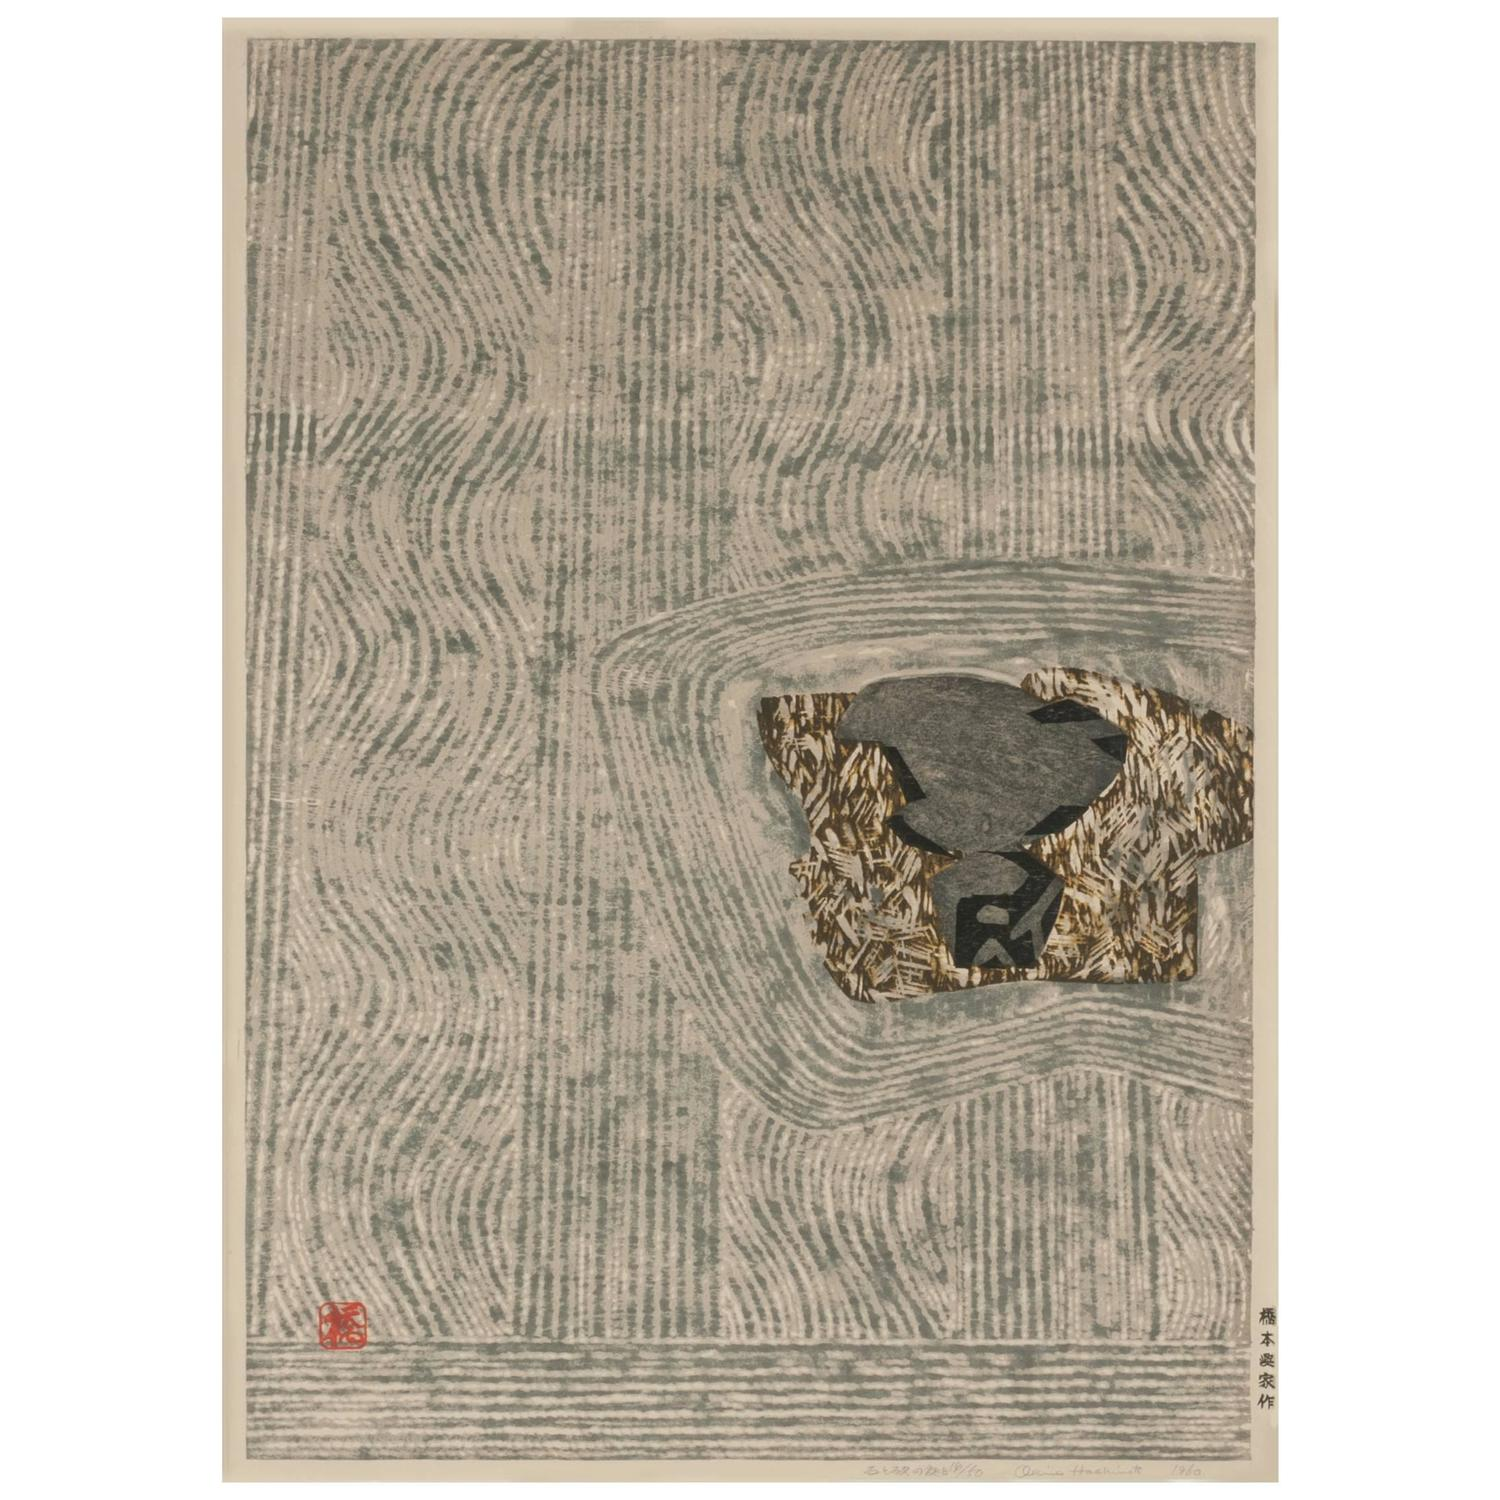 Monumental Okiie Hashimoto Print of Japanese Rock Garden, 1960 - Antique & Vintage Asian Art And Furniture For Sale In Washington